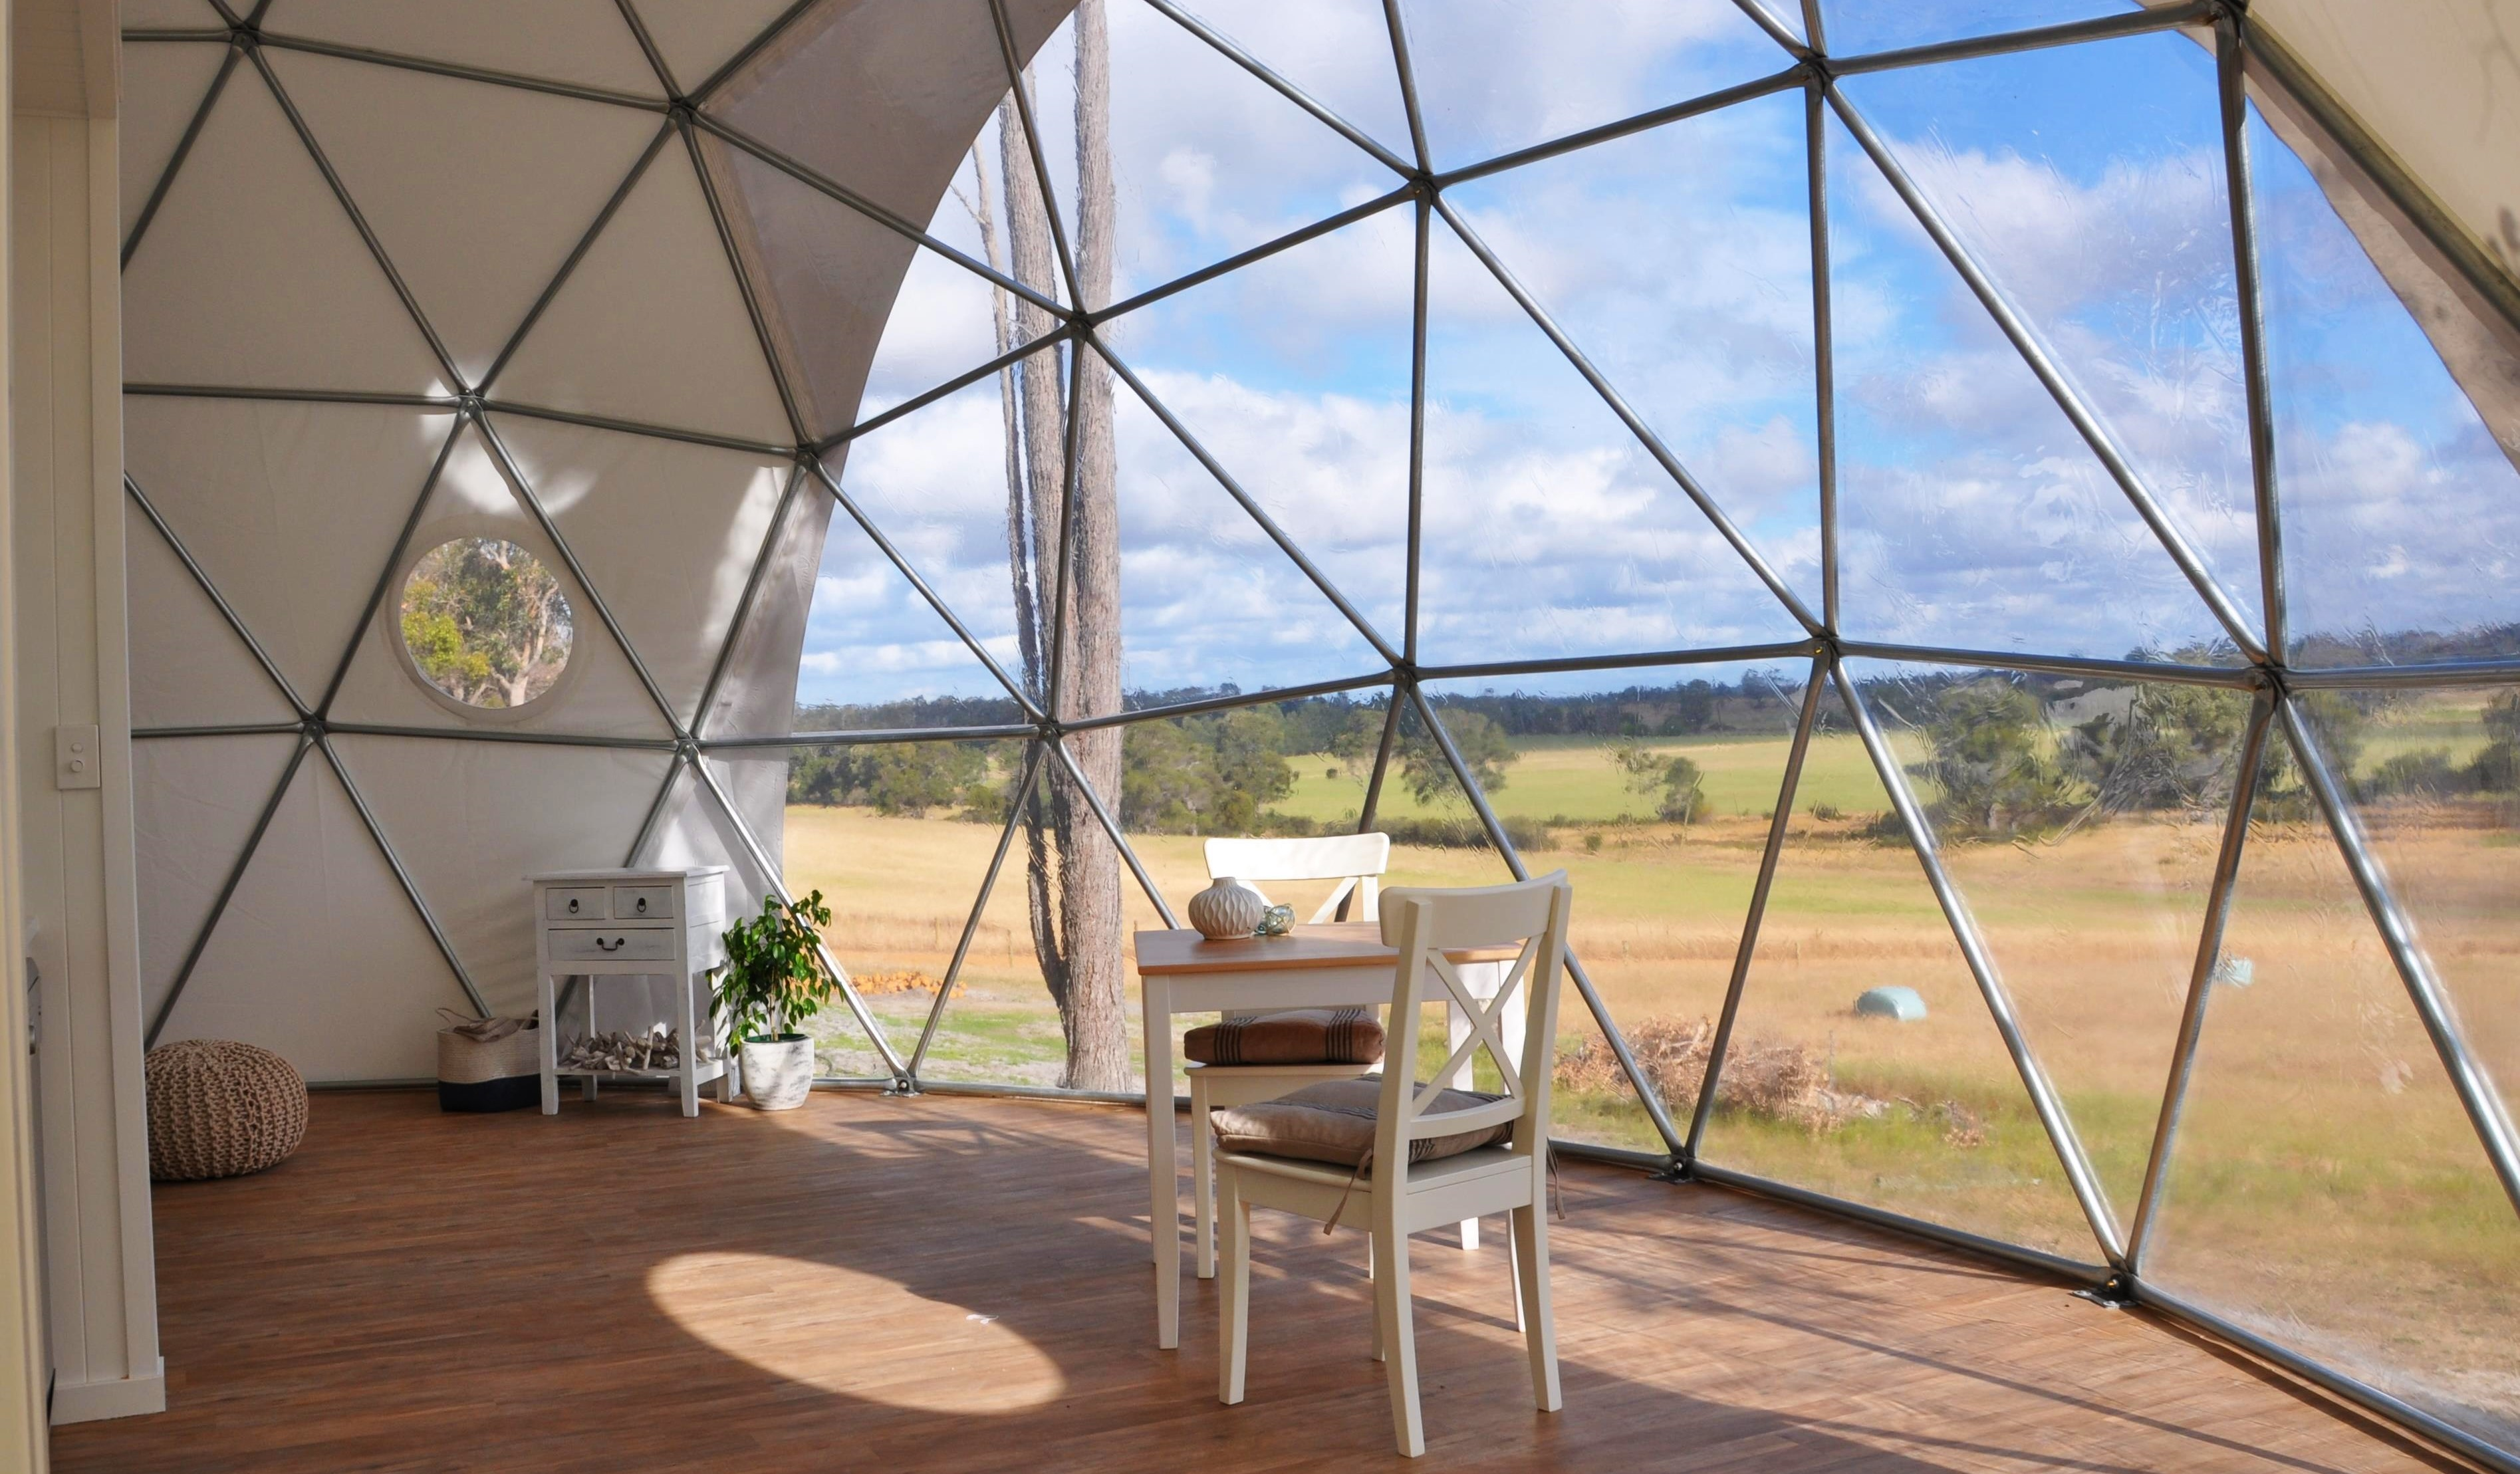 Mile End Gl&ing Domes Australia & Geodesic Dome Shelters for Award Winning Glamping Sites